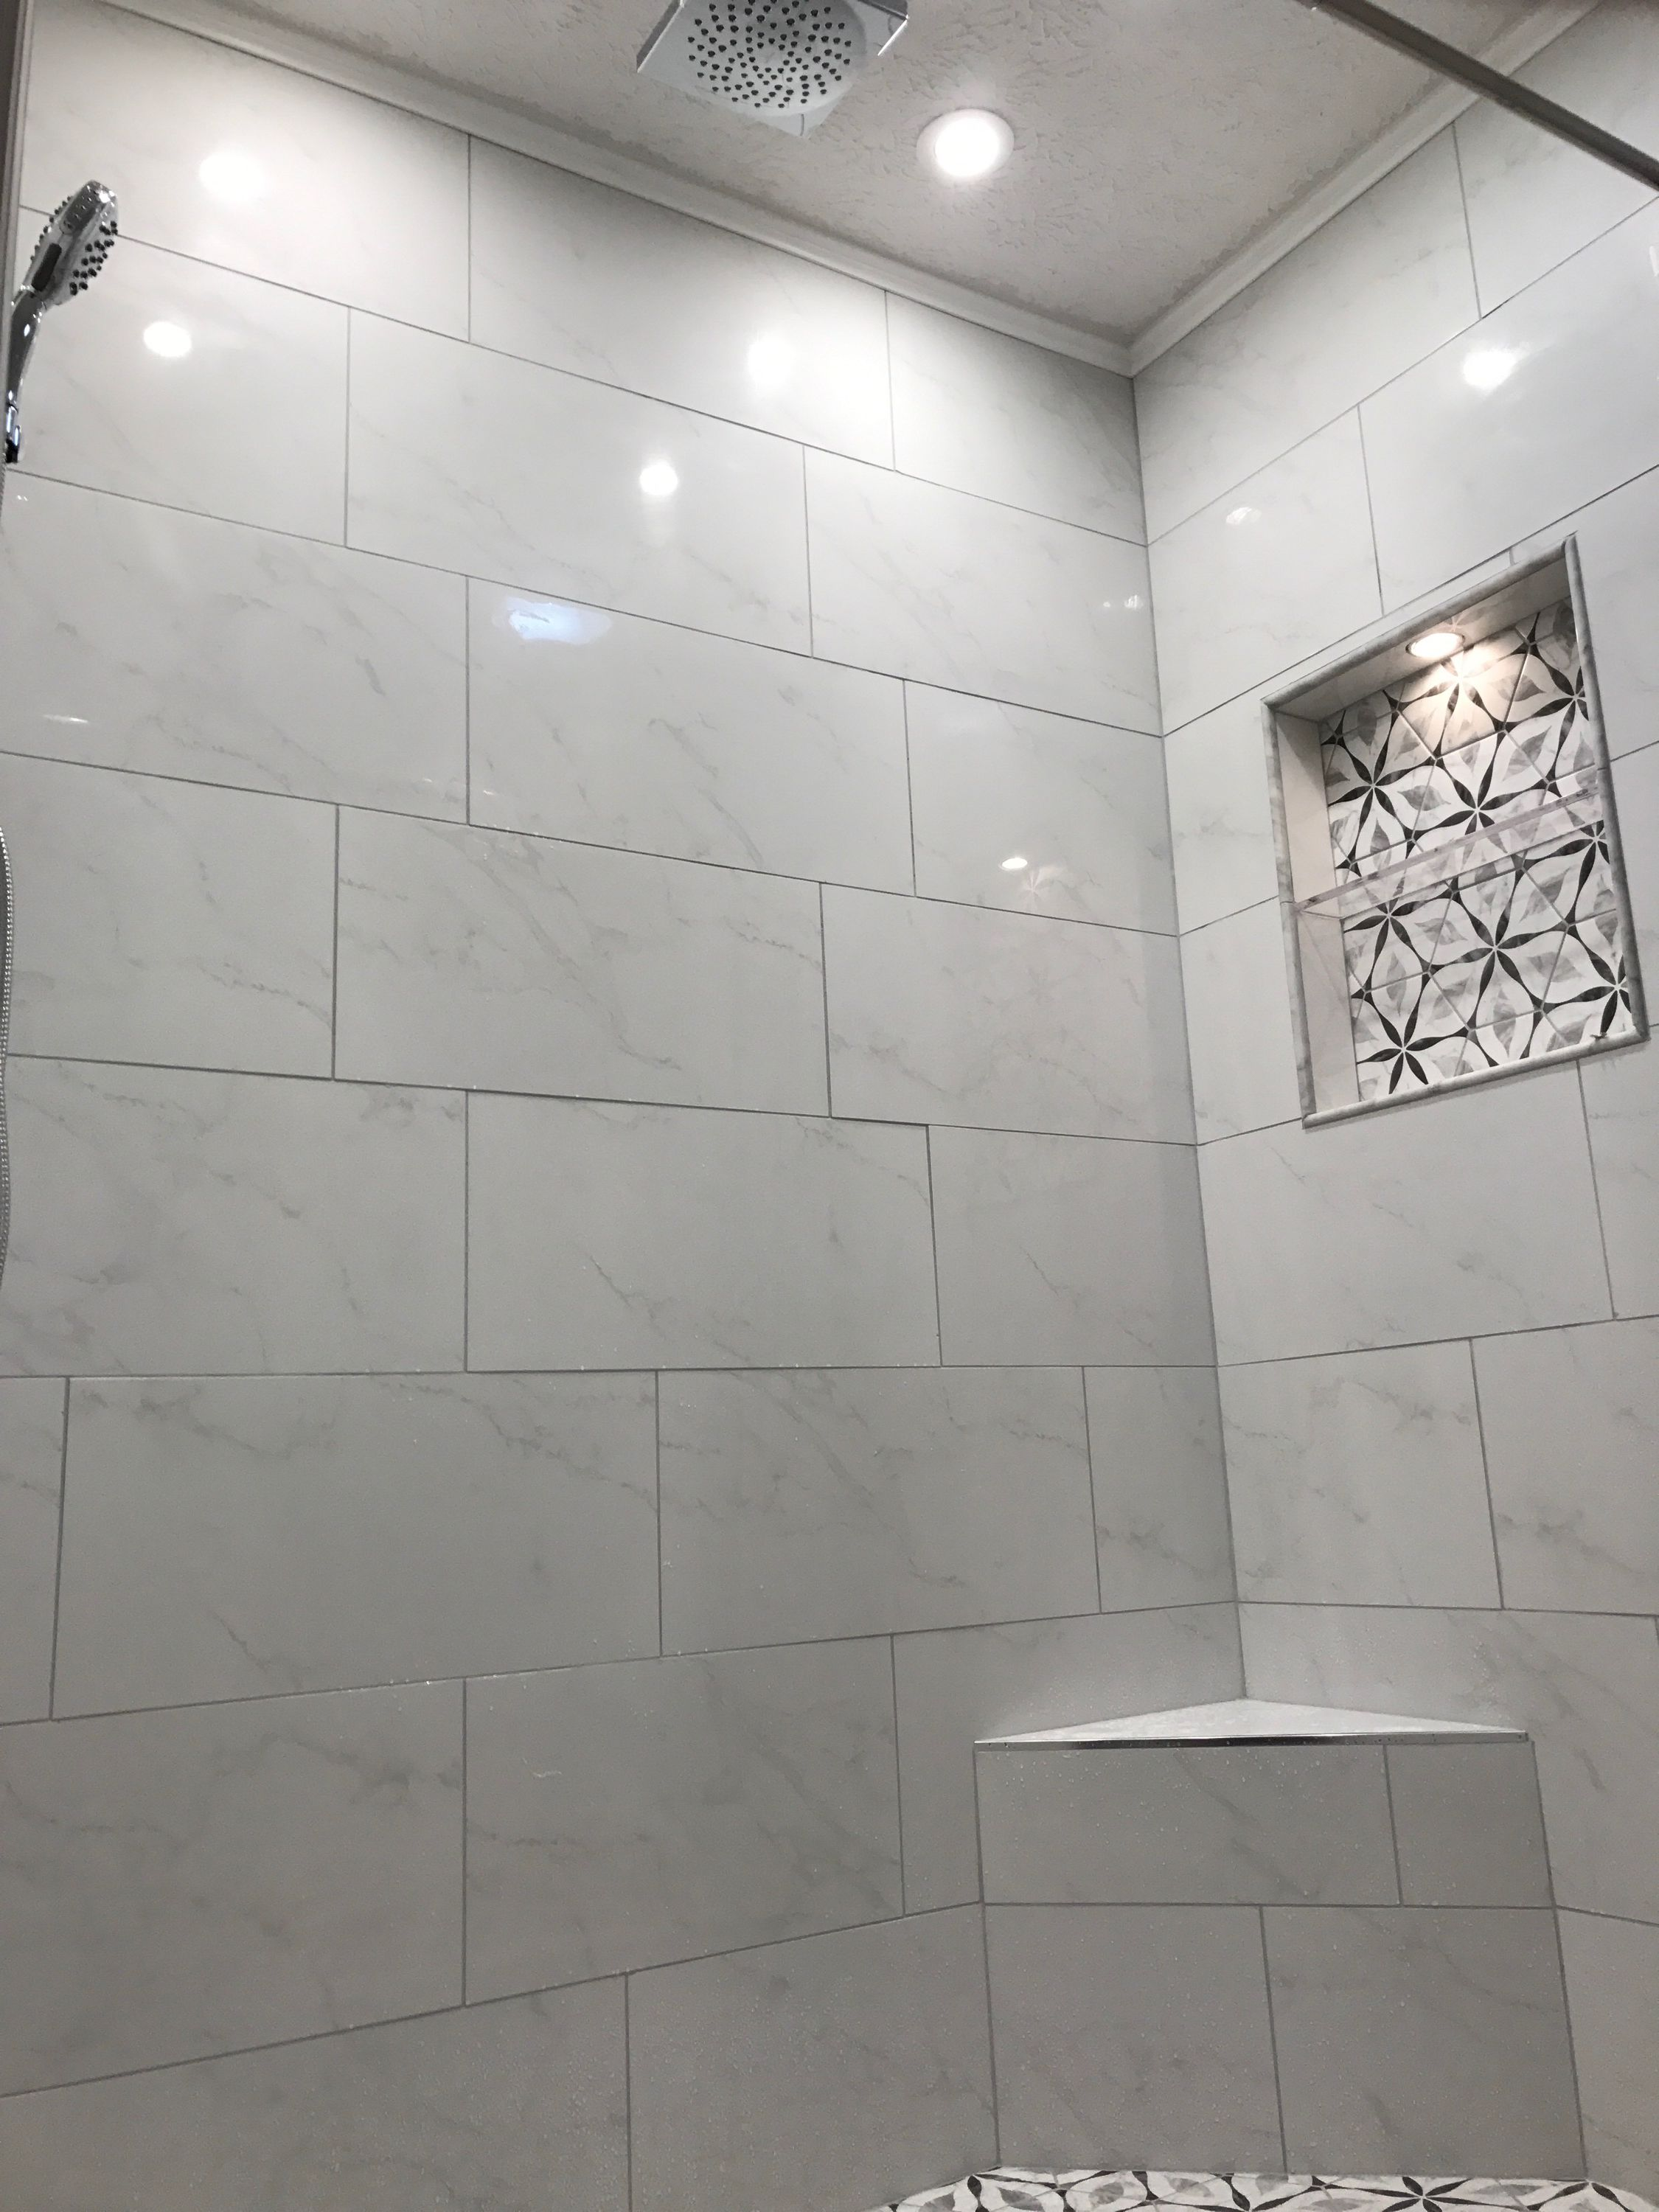 Carrara White Rectangle Tile Merona Tile From Home Depot In A Black And White Flower Pattern Home Depot Bathroom Bathroom Floor Tiles Stone Tile Bathroom